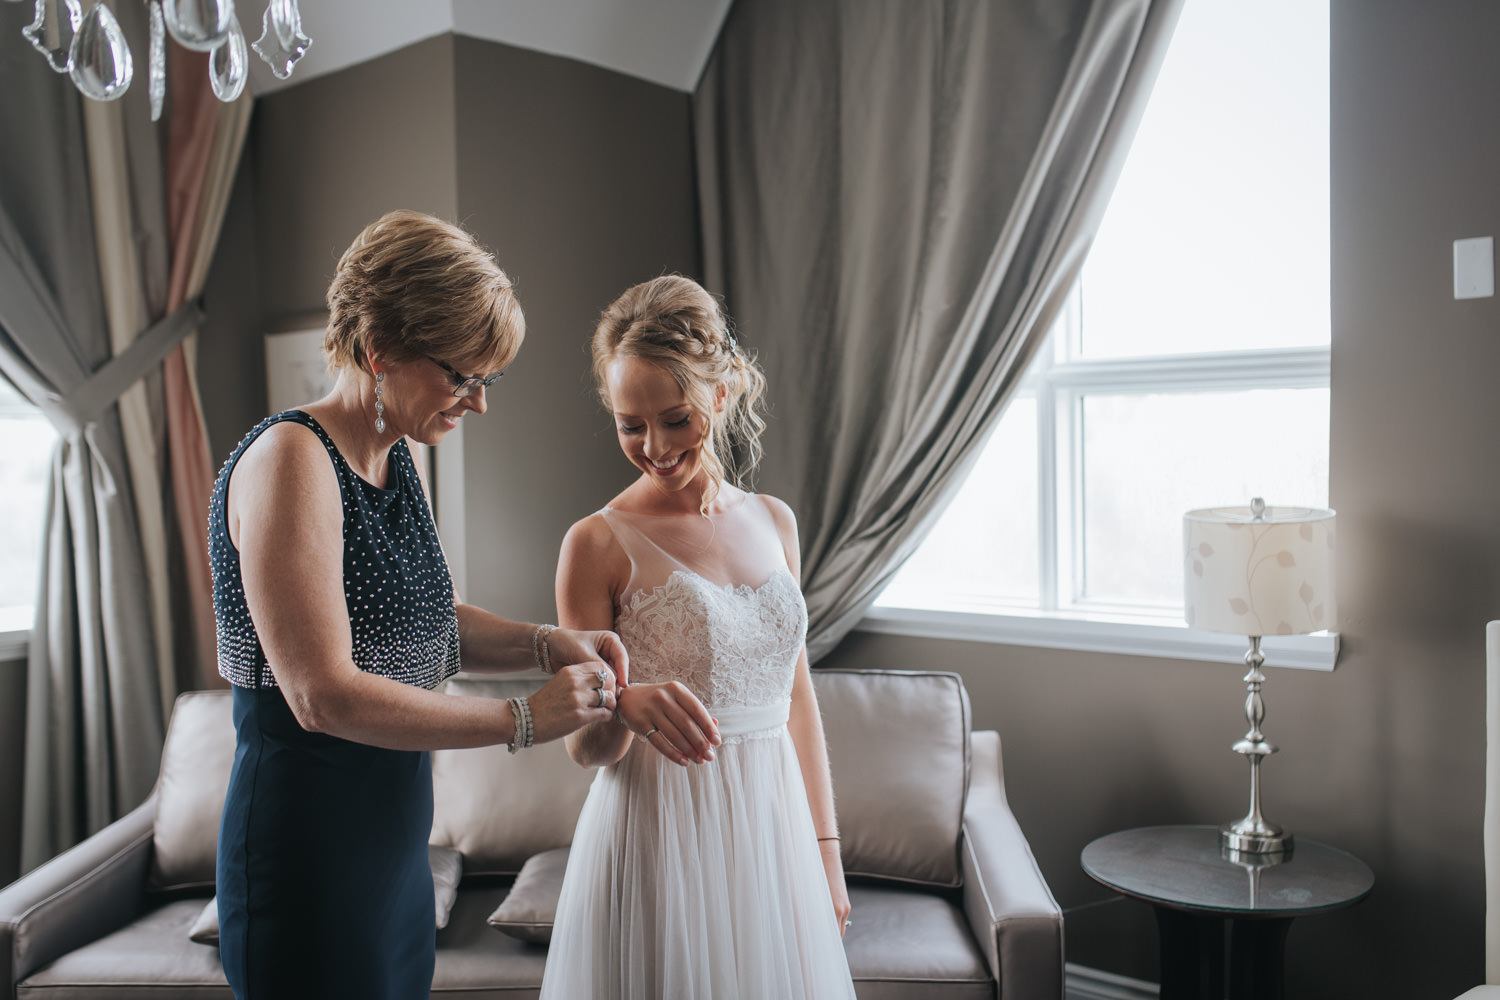 Mother and daughter moment at the Elm Hurst Inn and Spa Bridal Suite